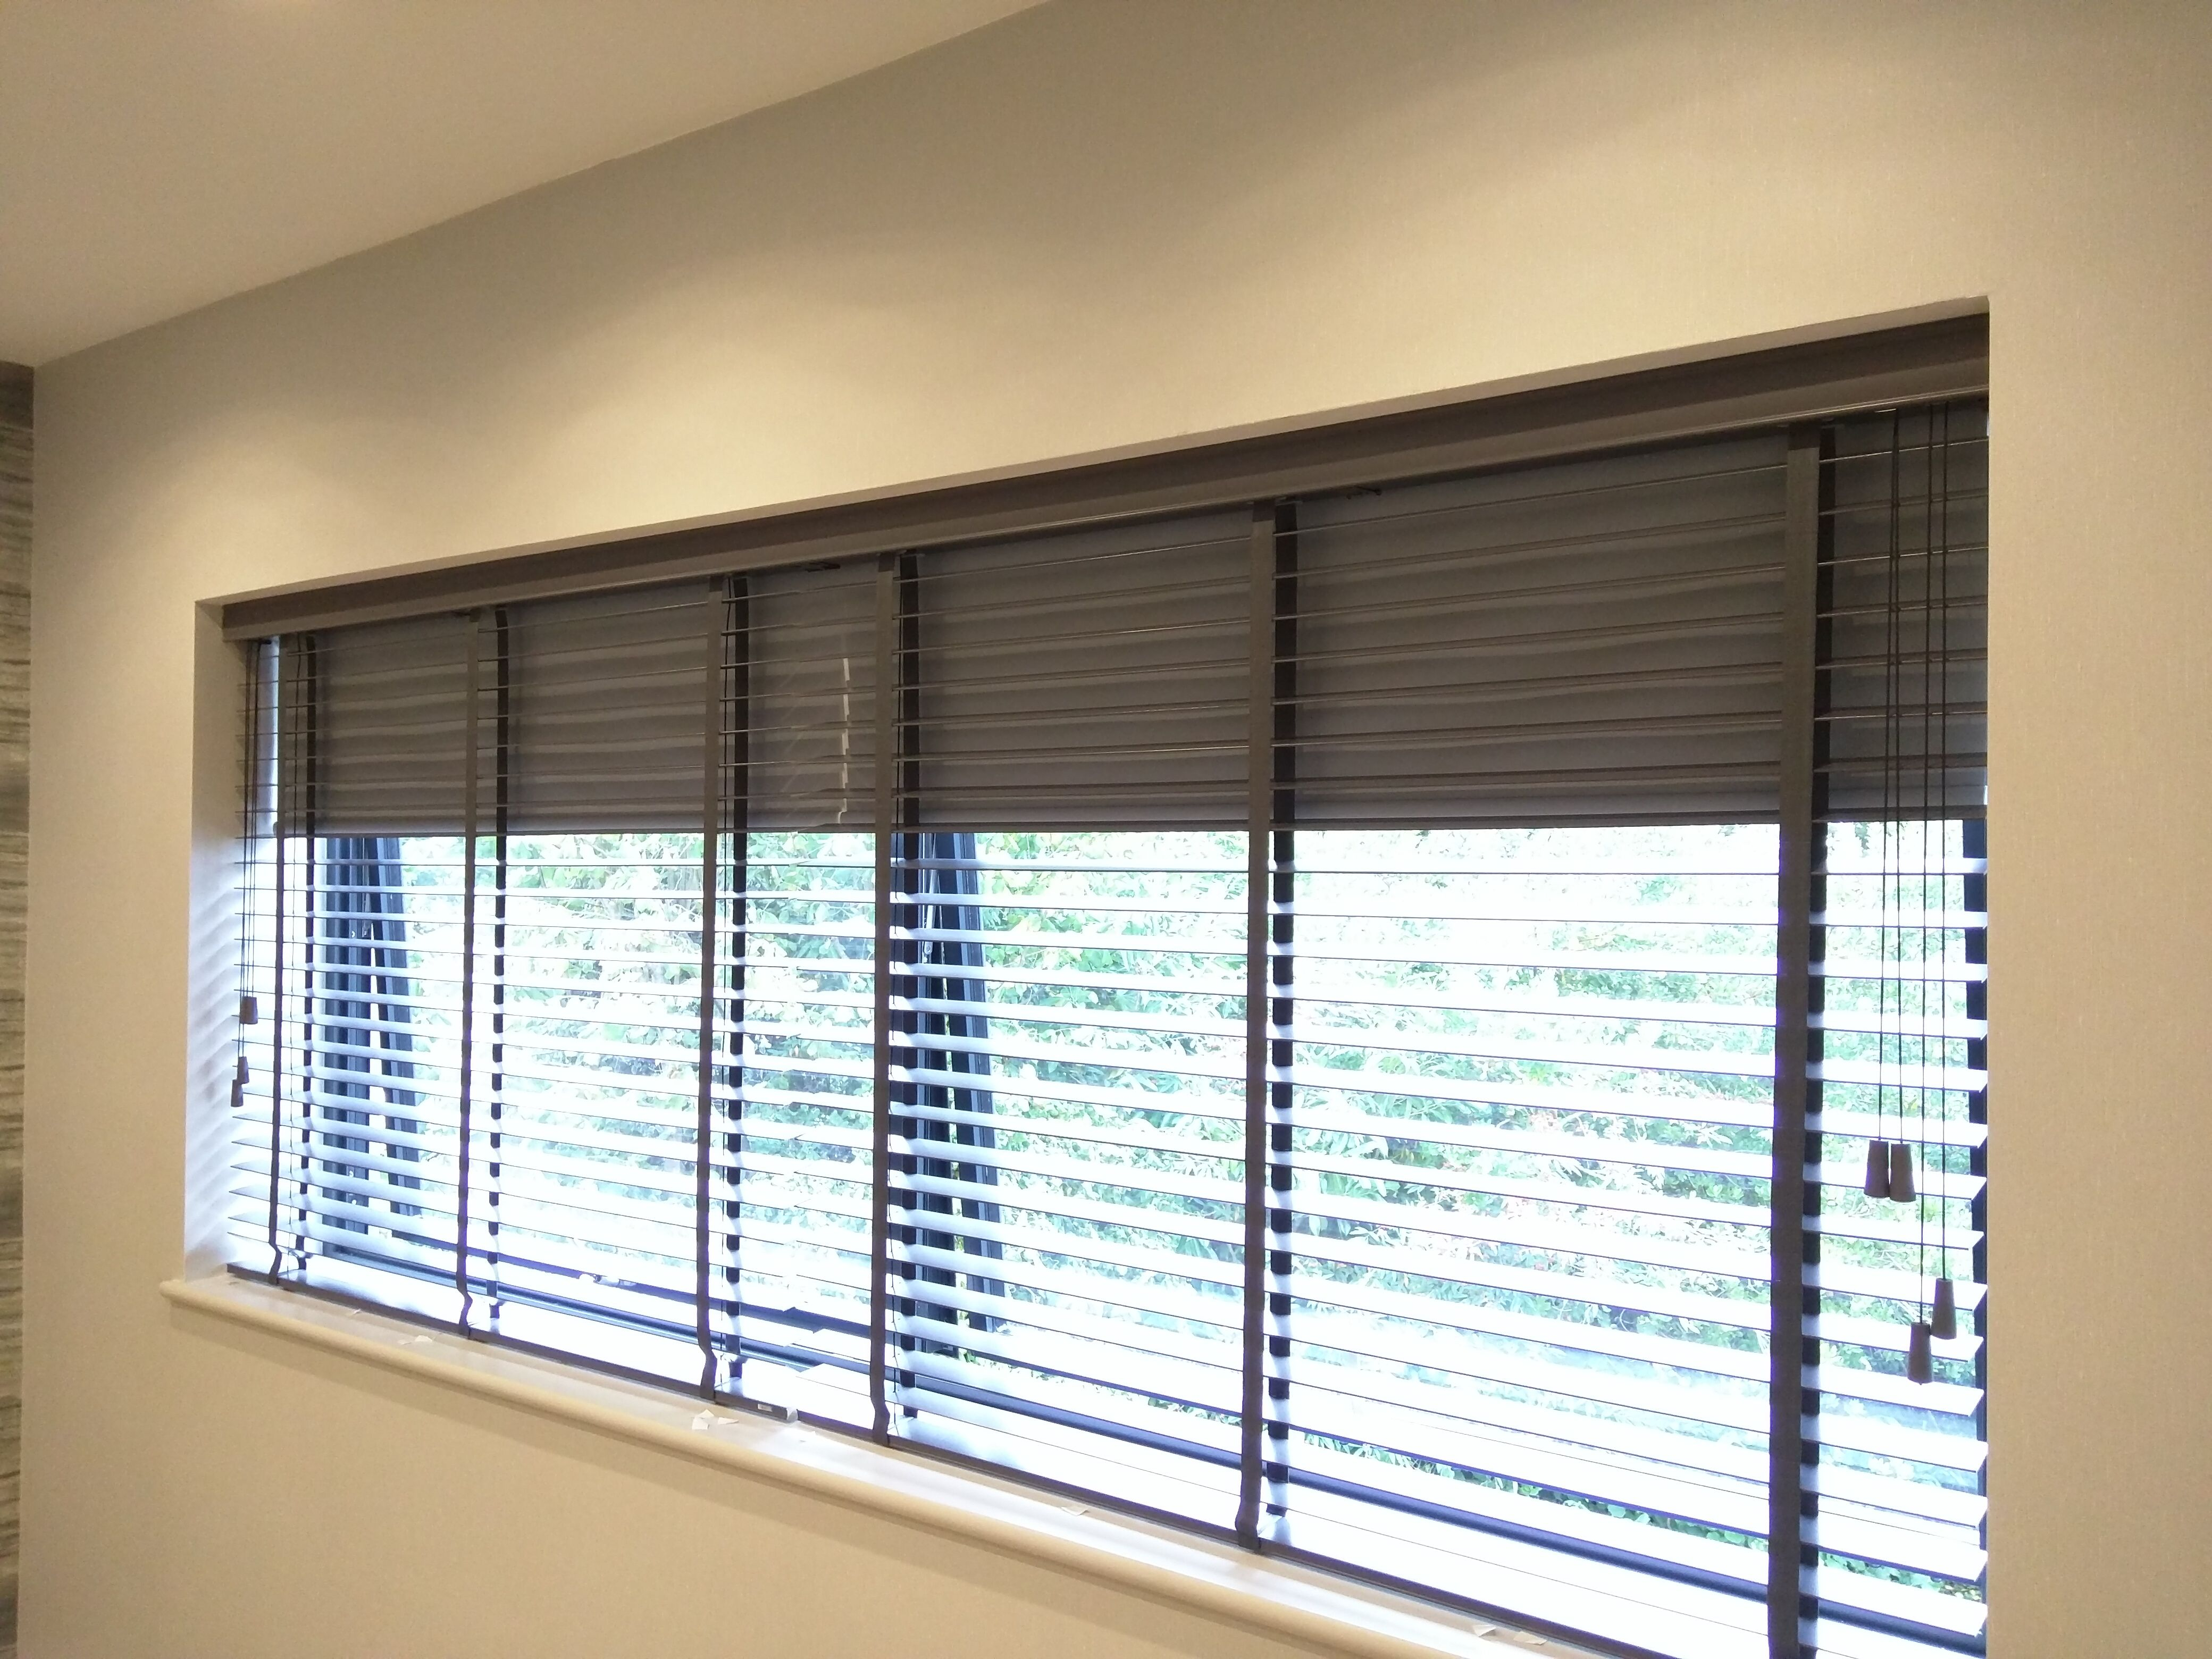 Wood Venetian Blind With Blackout Roller Blind Behind Fitted To Bedroom Window In Hove Dual Double Blinds Wooden Blinds Living Room Blinds Blinds Design